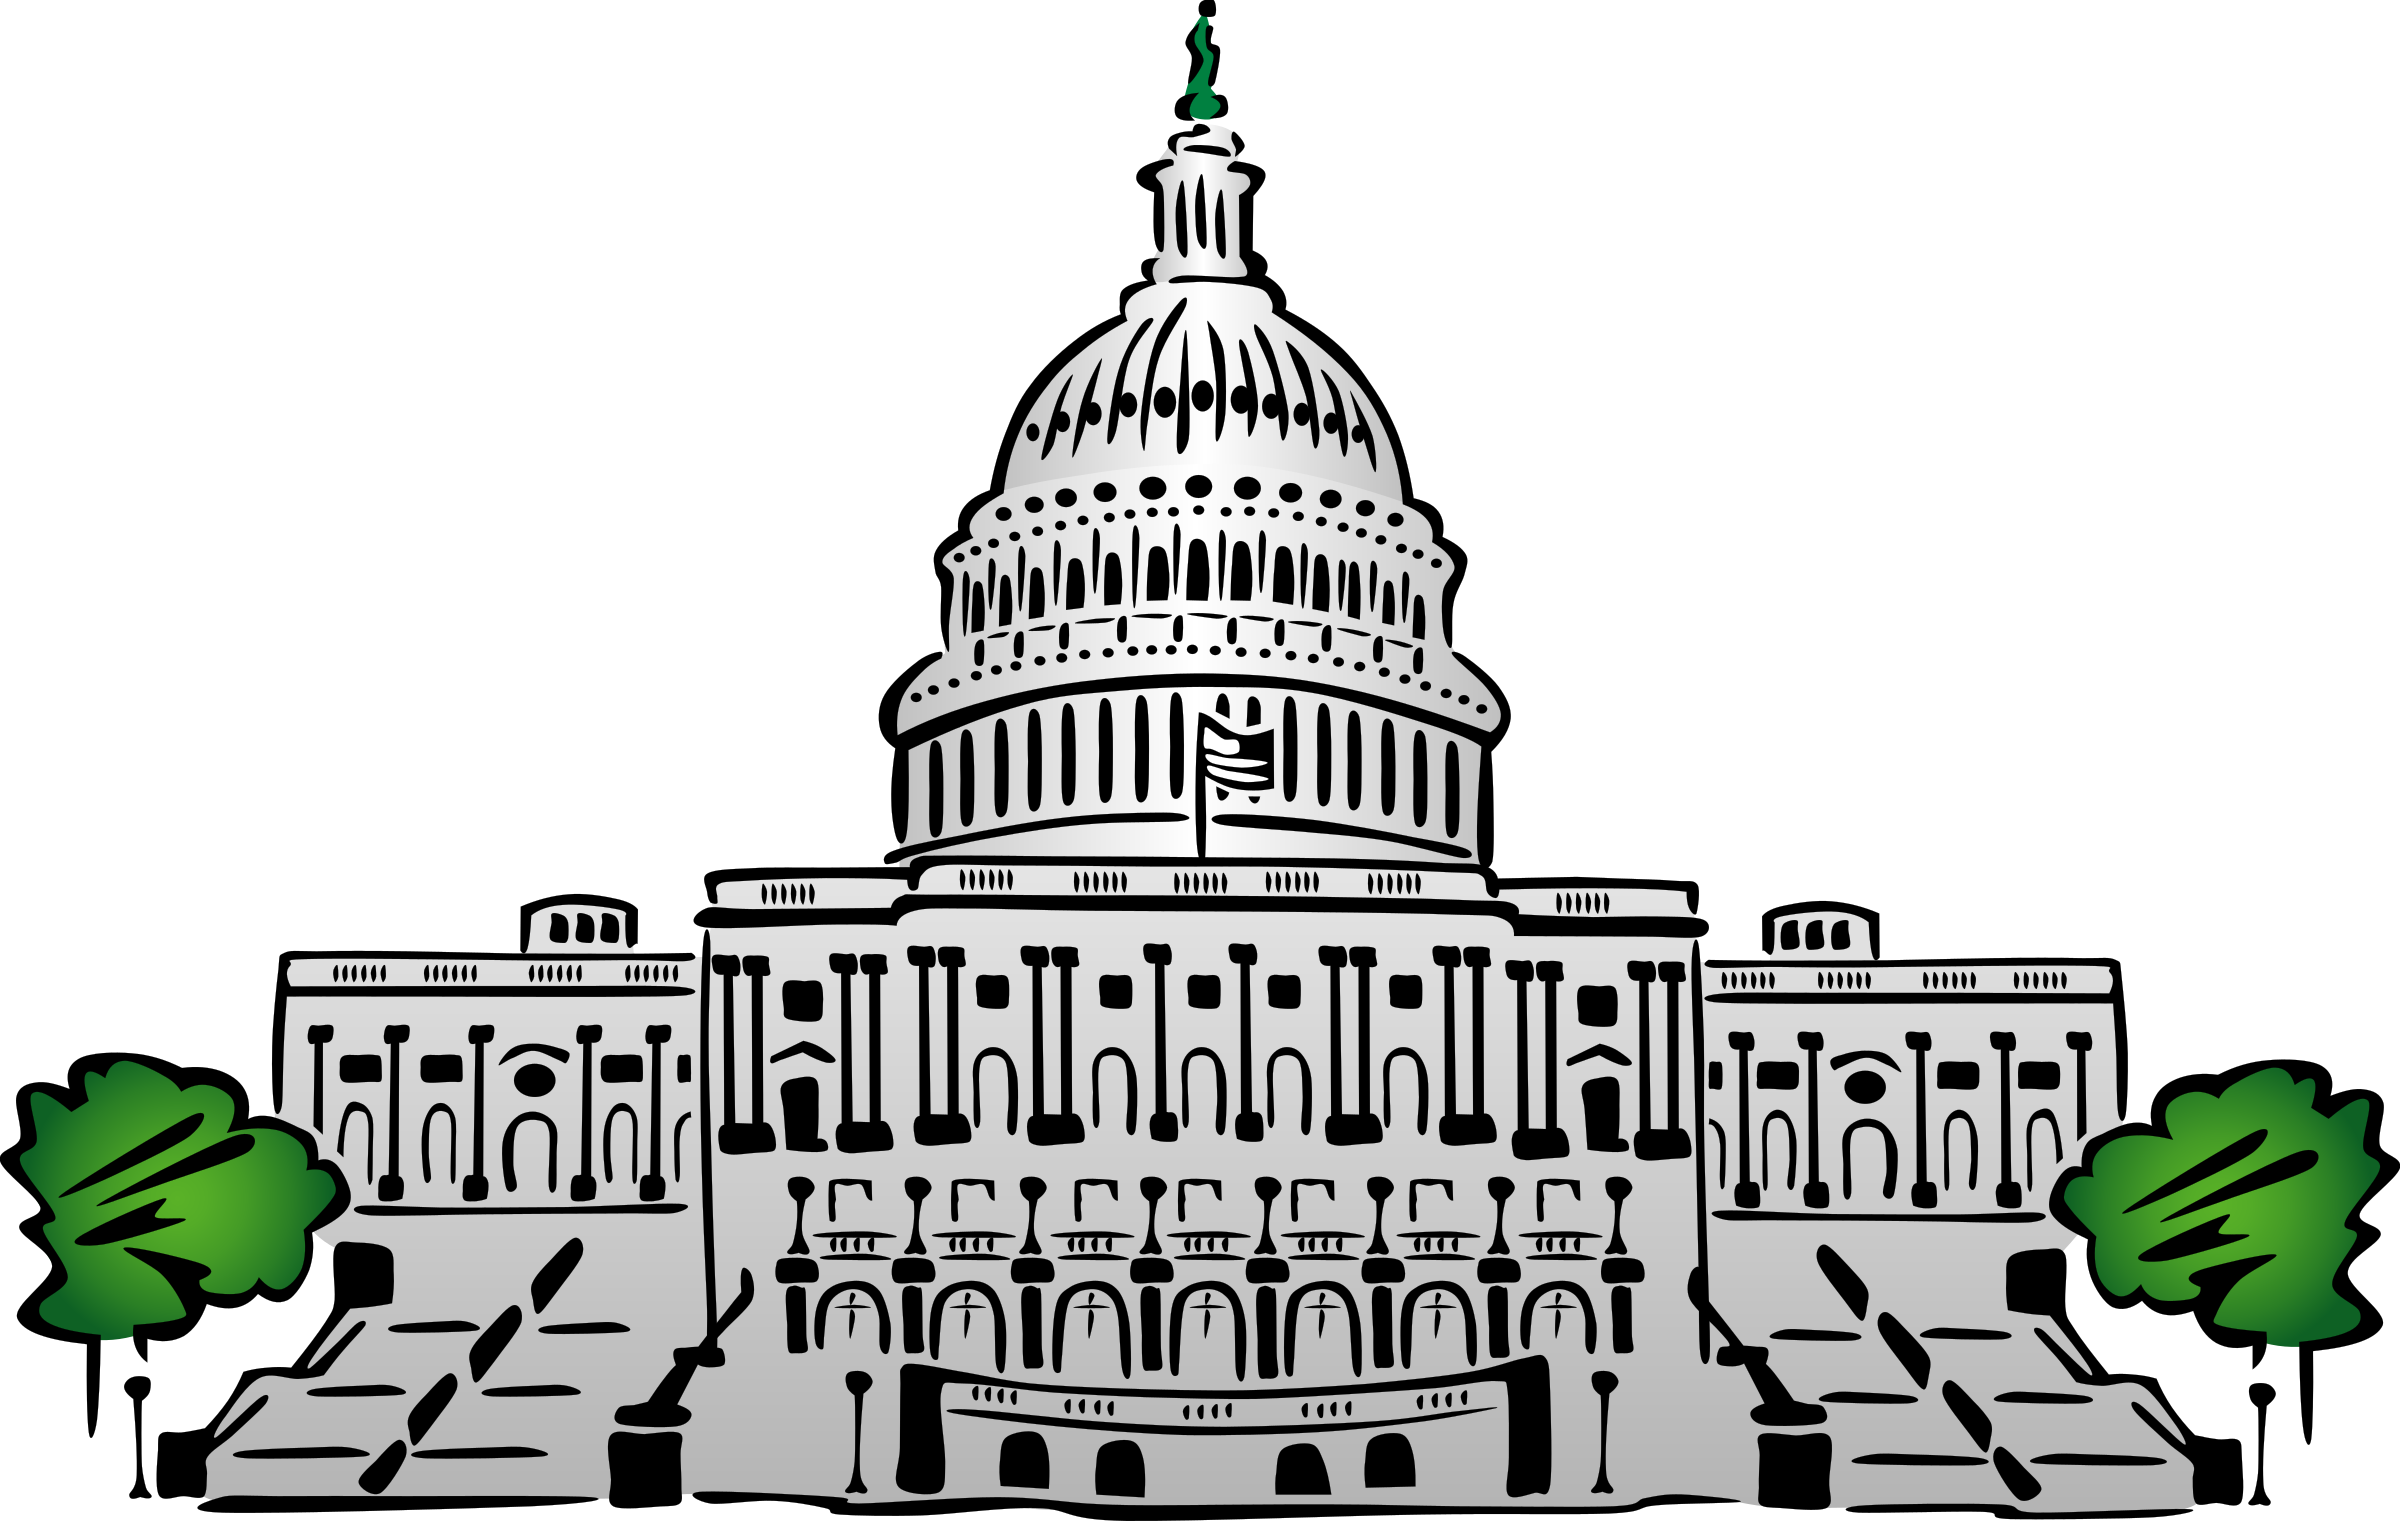 vector royalty free library Us building big image. Capitol clipart